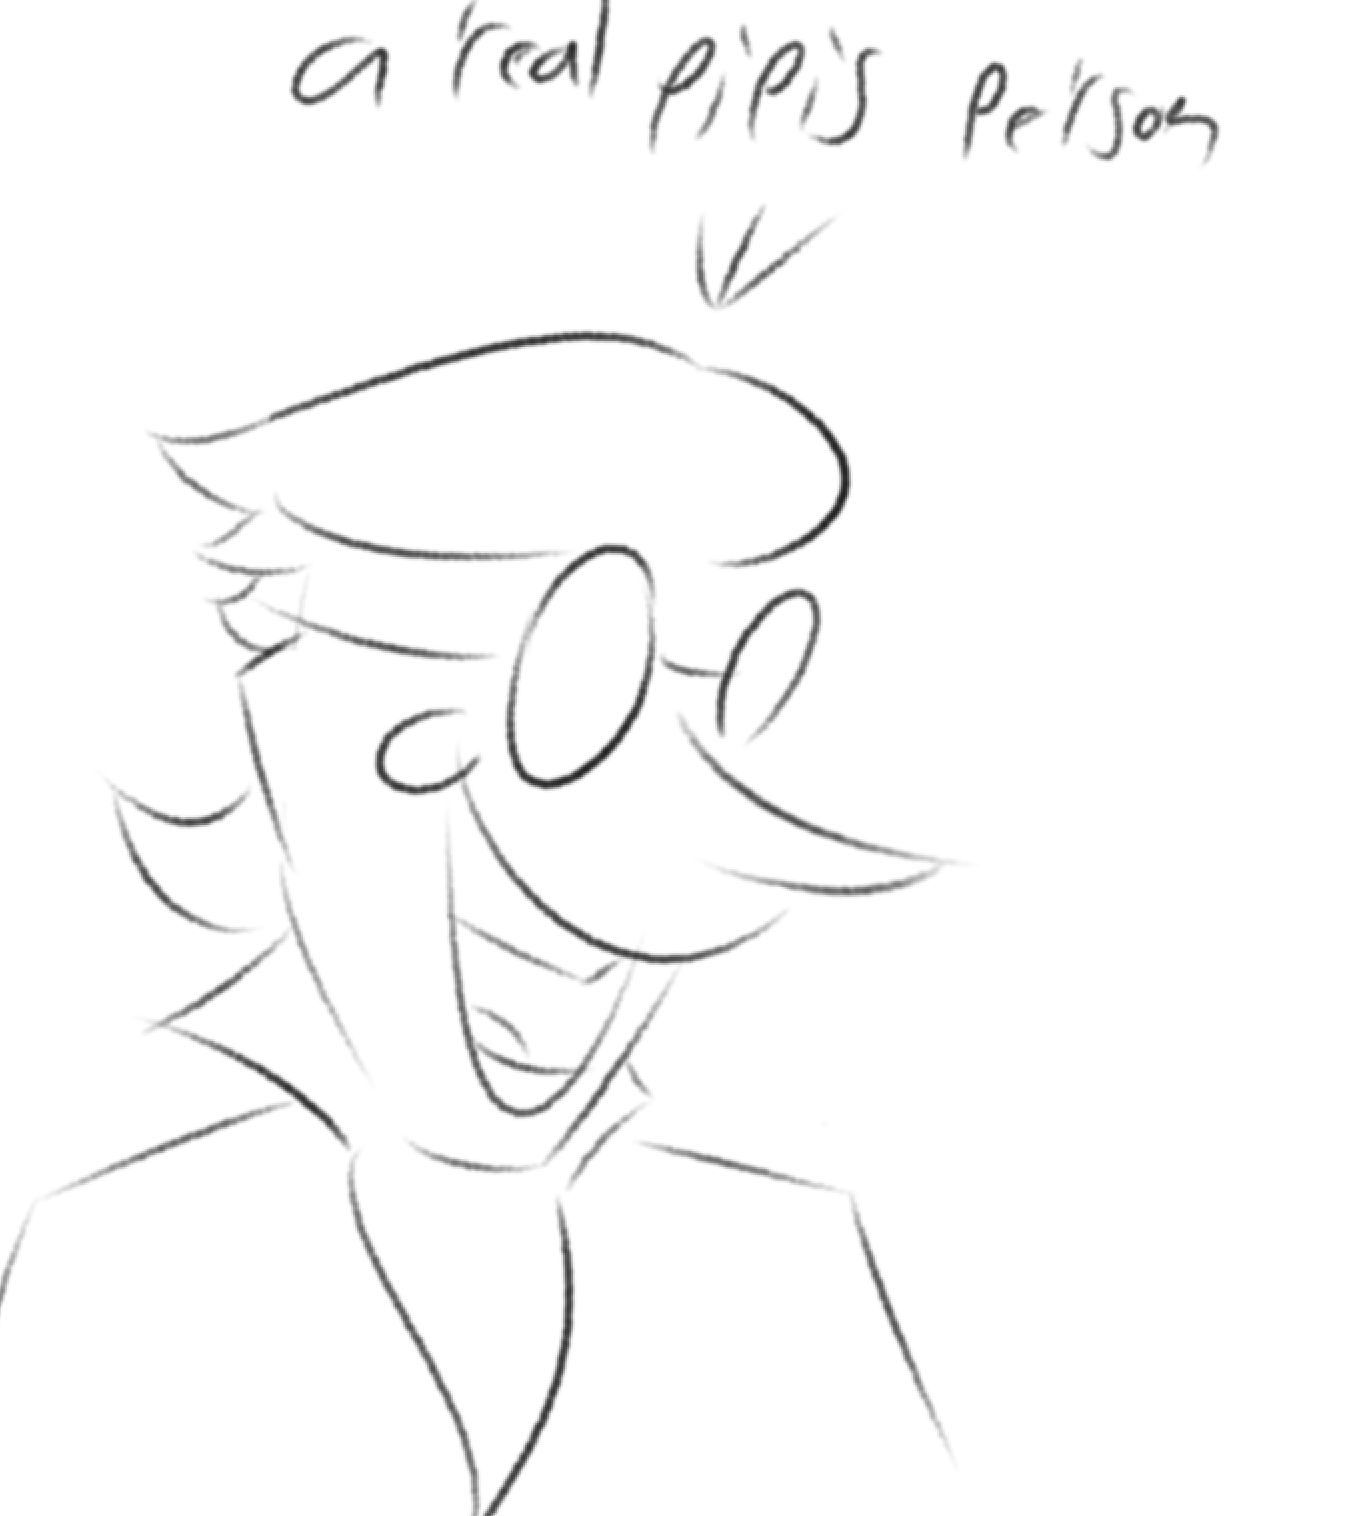 A real pipis person